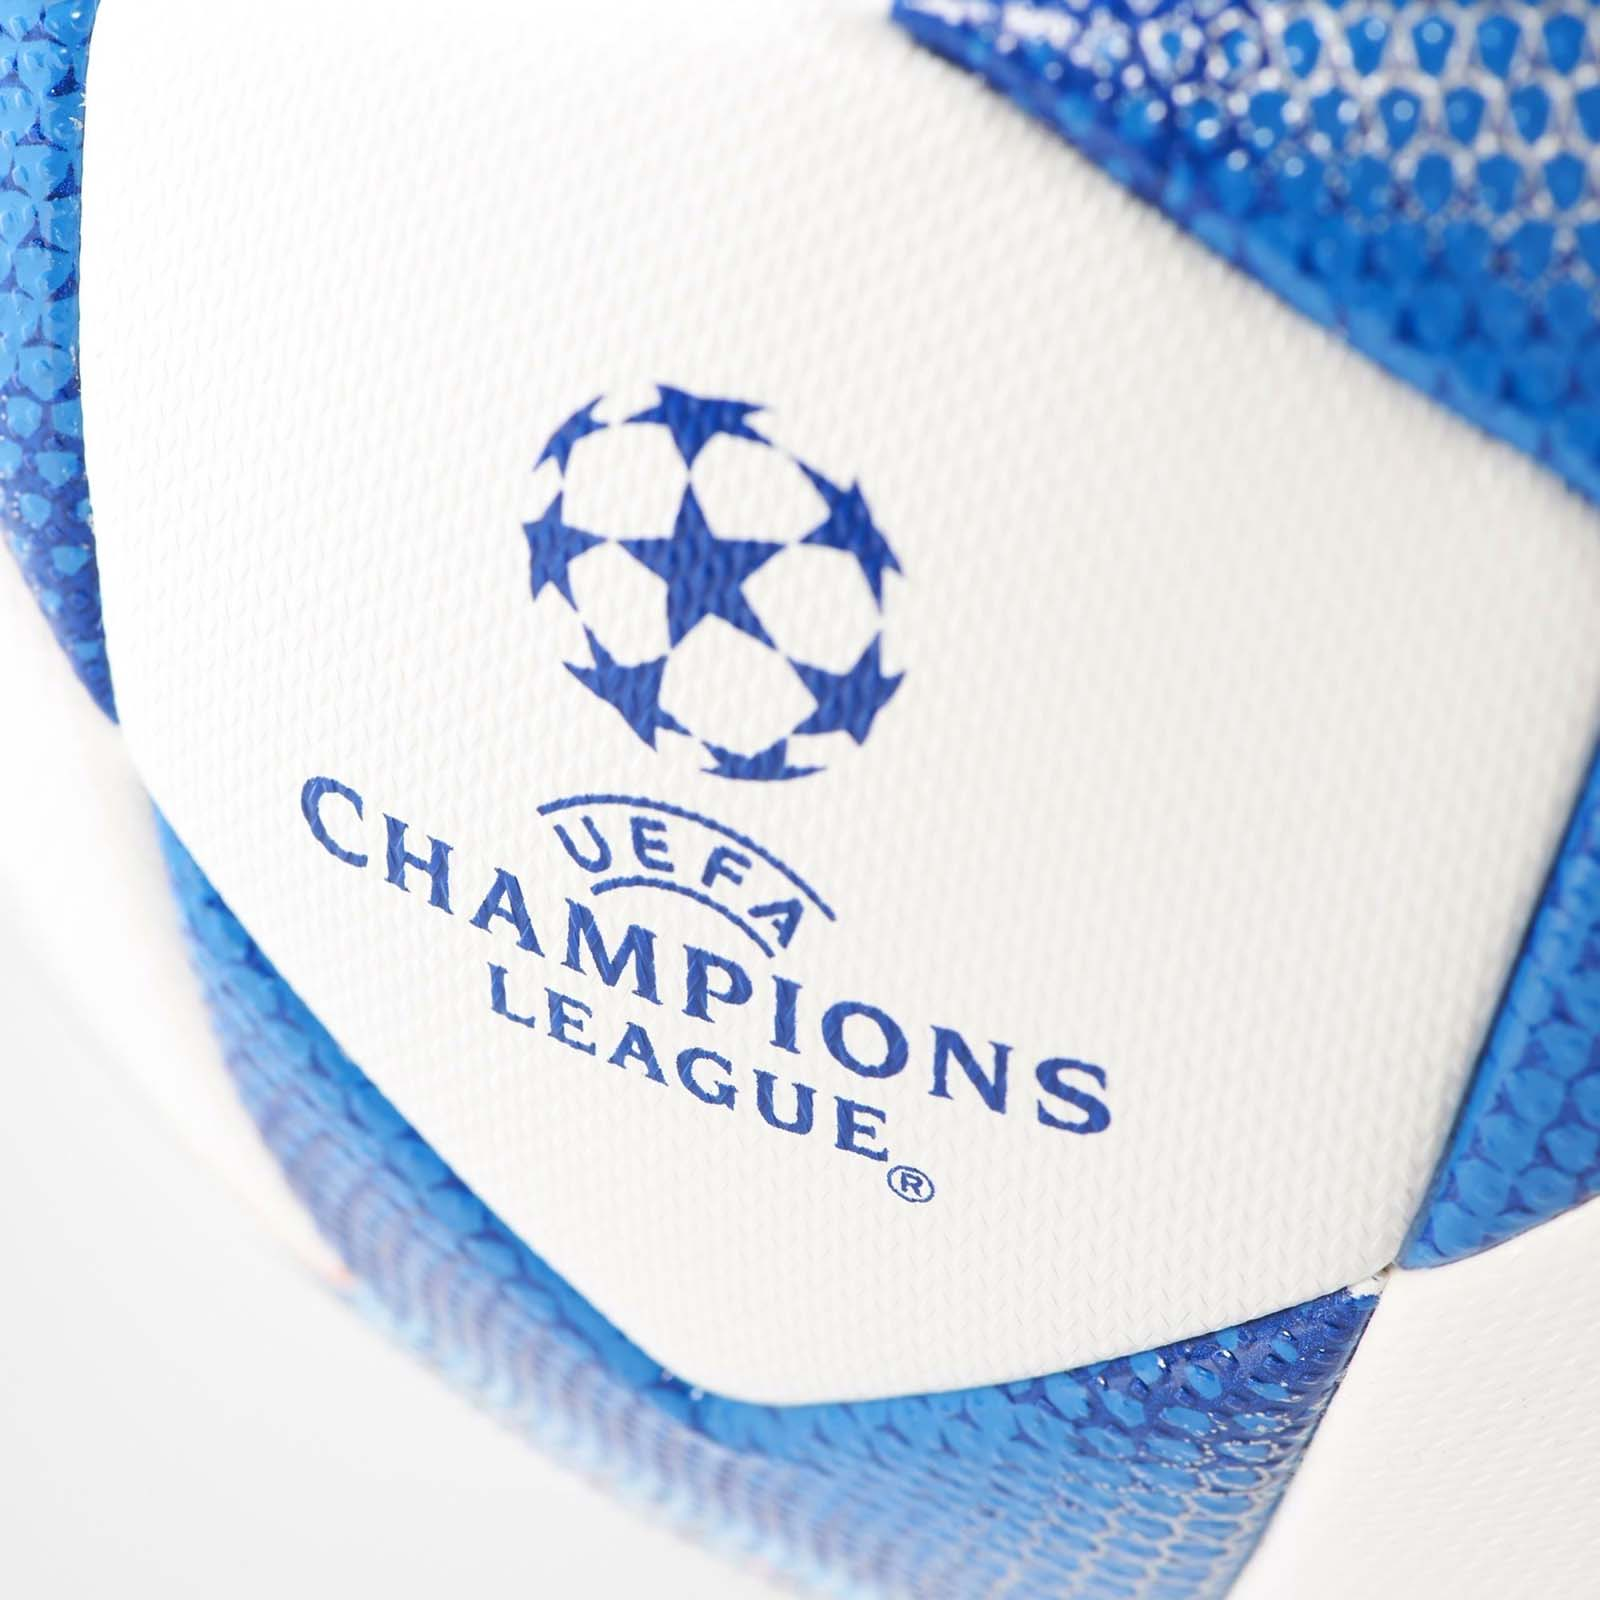 Pronostic Ligue des Champions - Groupe C